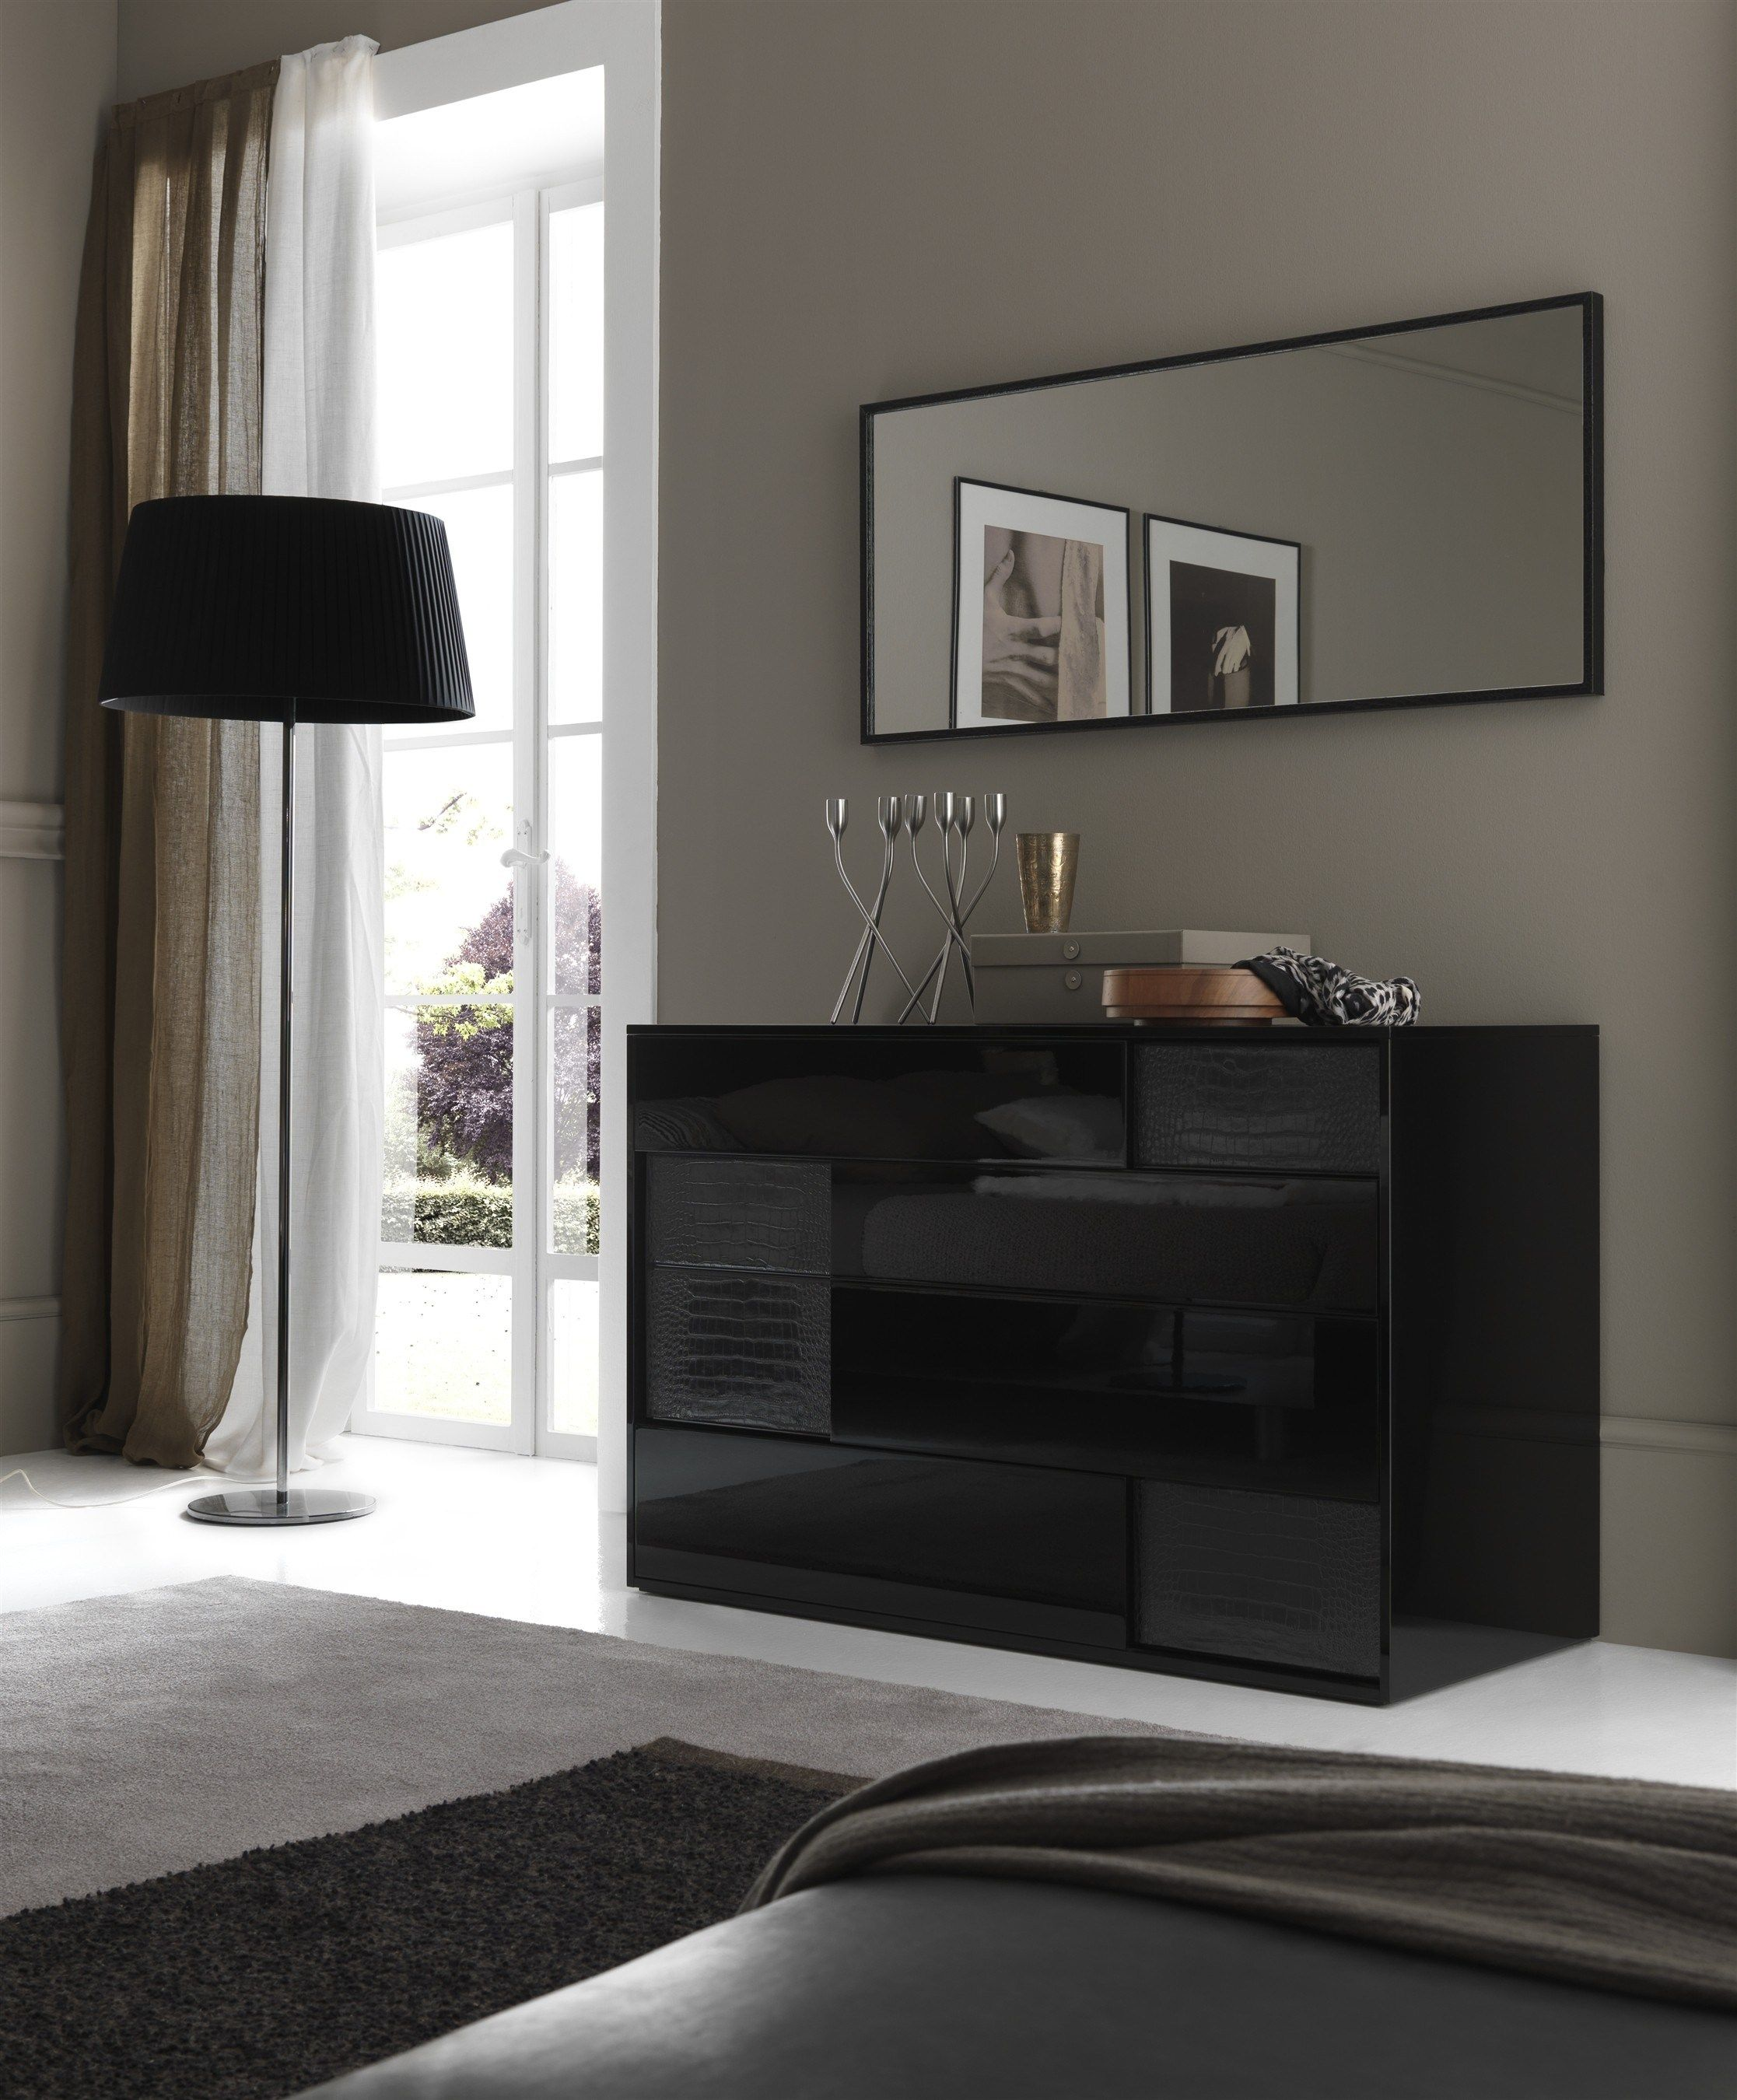 Modern High Gloss Black Bedroom Furniture Living Room